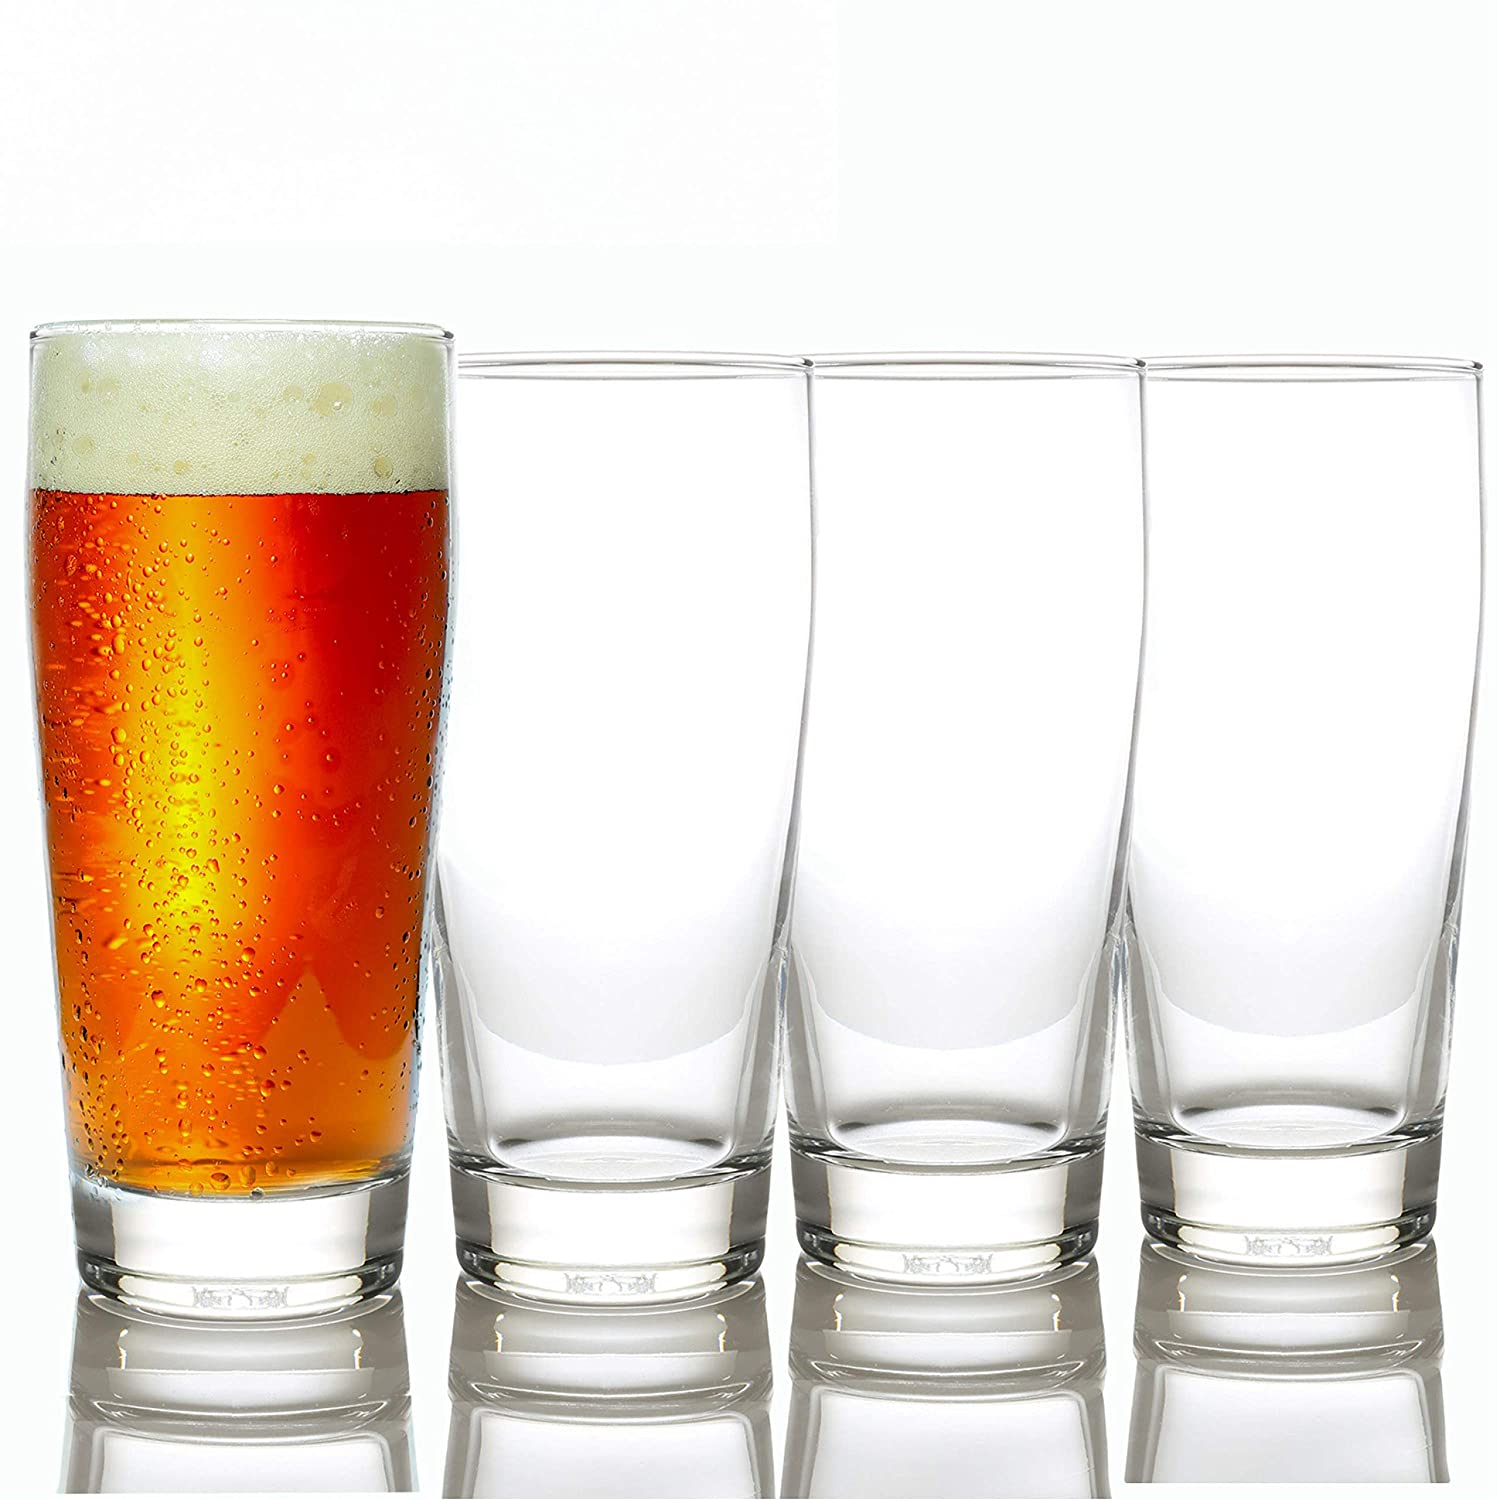 Taylor'd Milestones Premium Beer Glasses - 16 oz Stackable Set of 4, Heavy Base for Stability and Freshness, Durable Glassware for Everyday Use & Home Bars. Bilboa